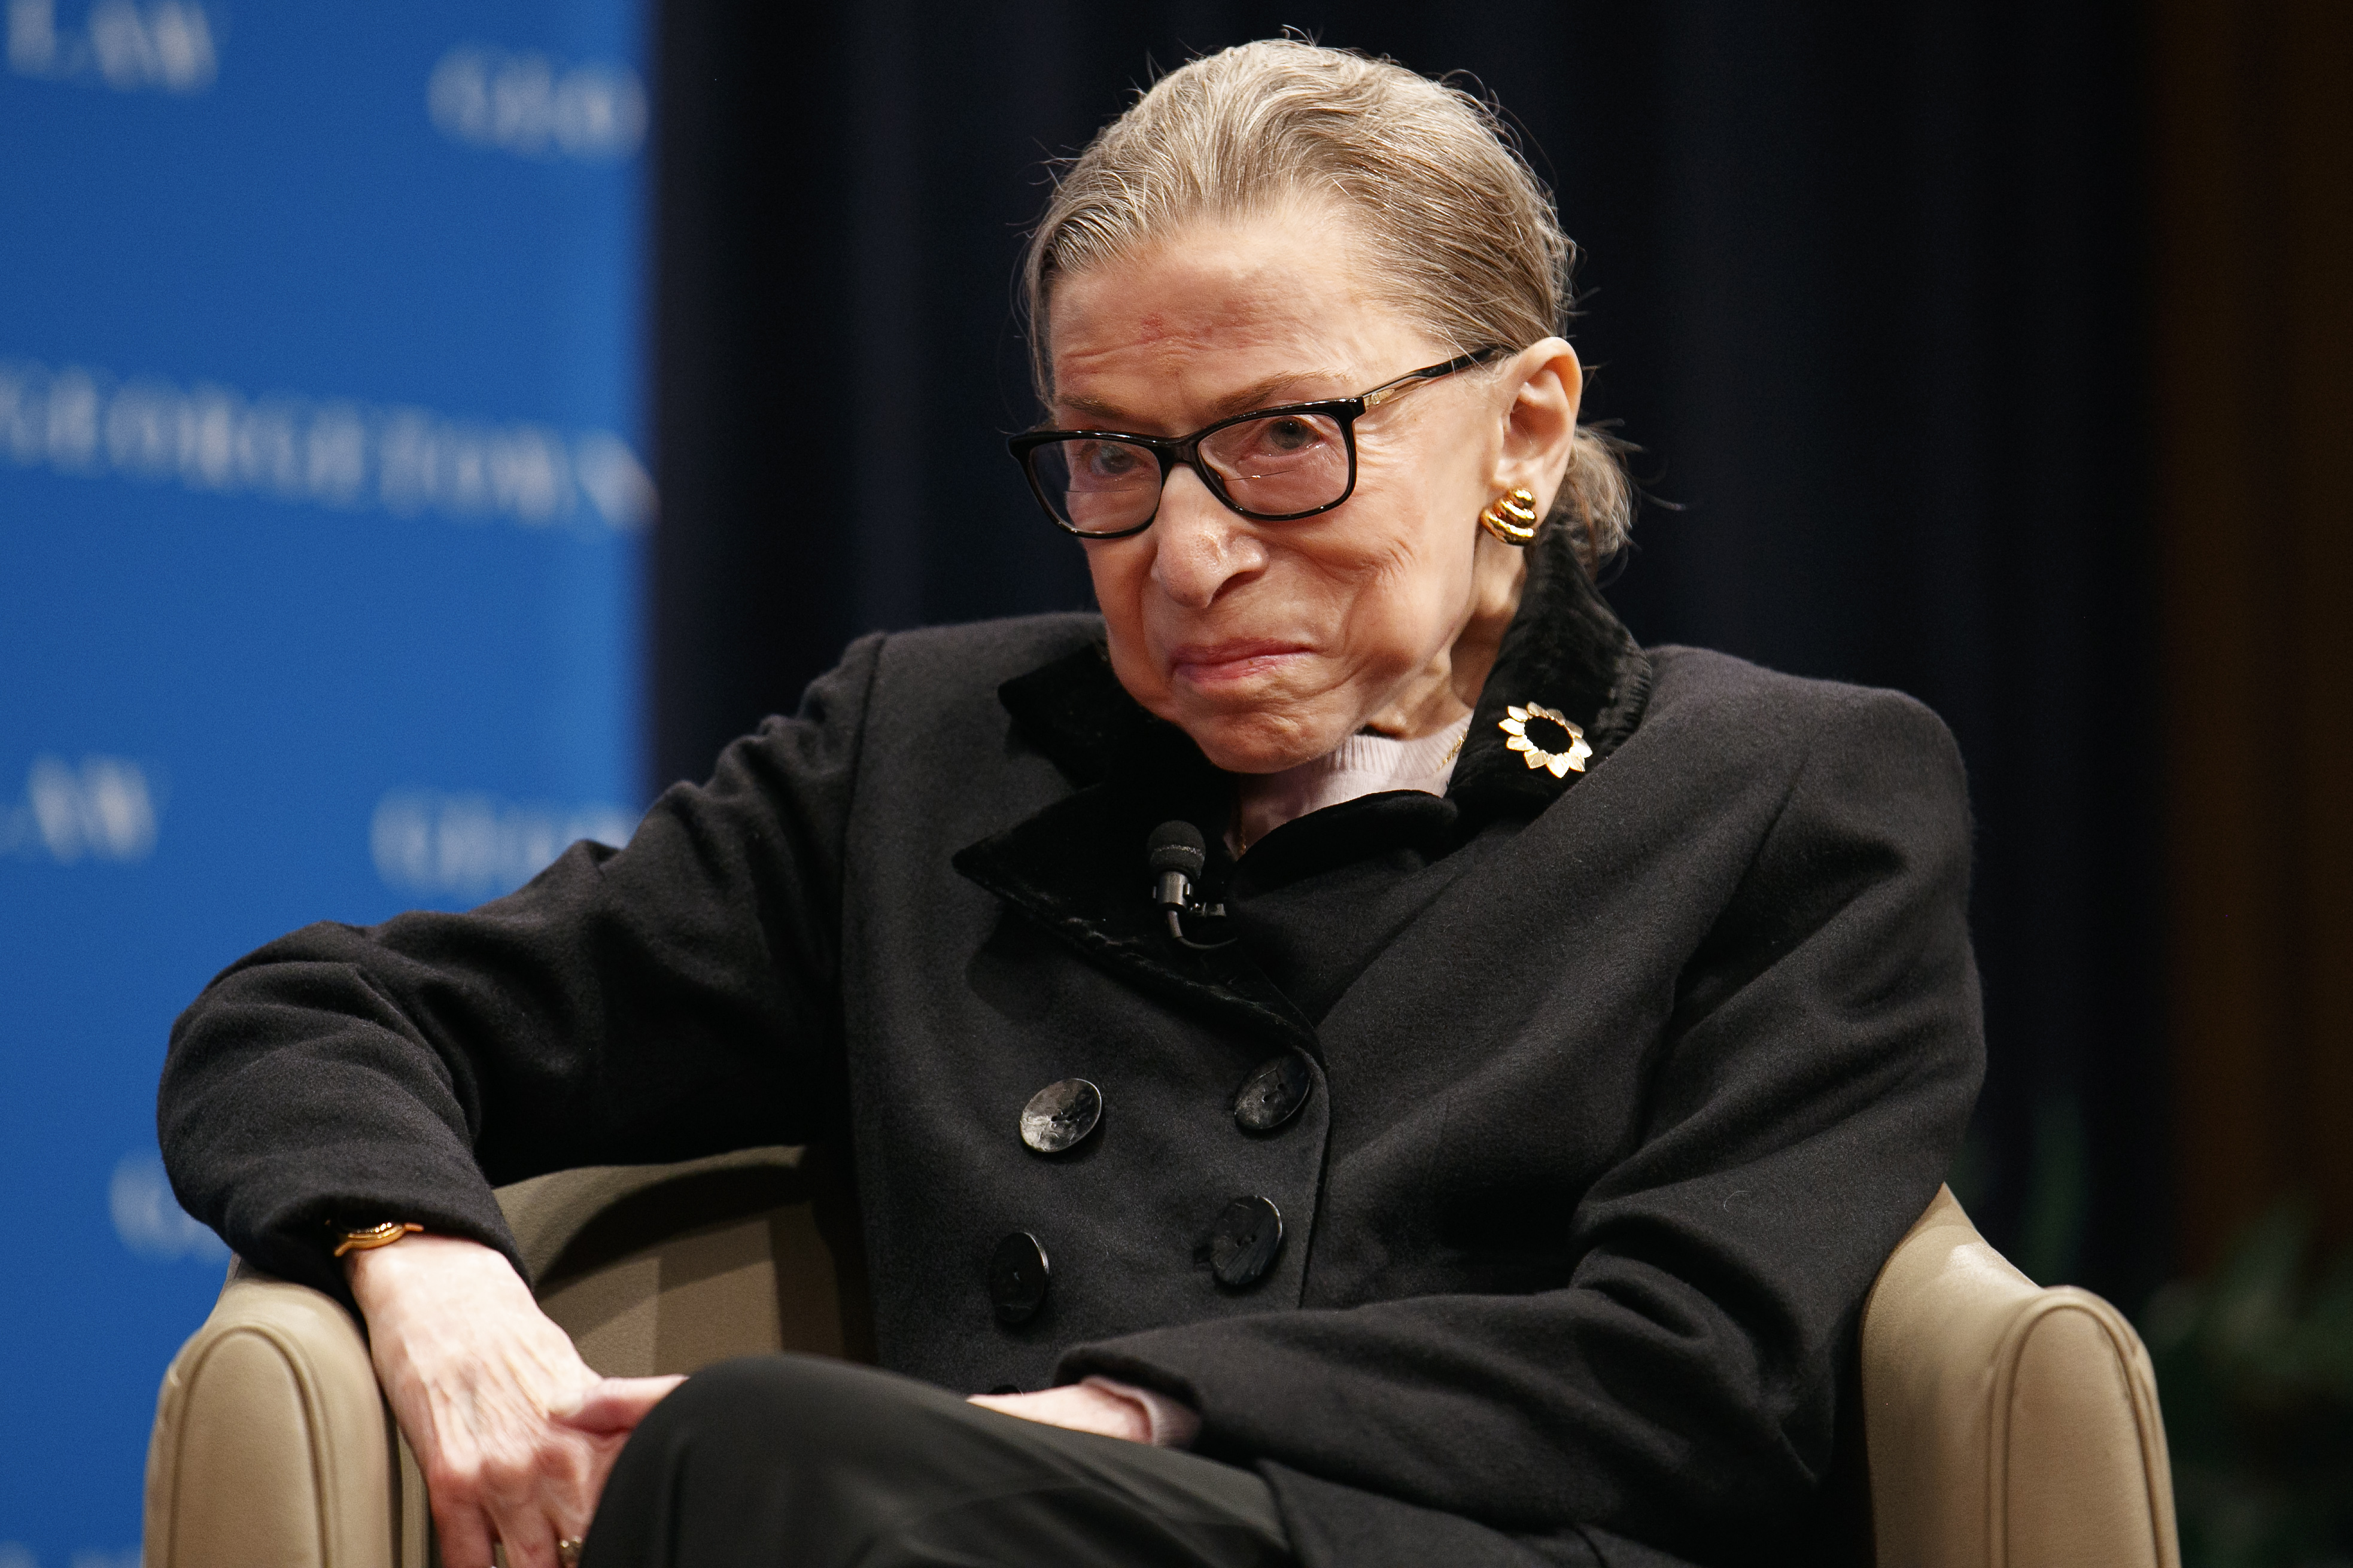 Supreme Court Justice Ruth Bader Ginsberg attends a panel with former President Bill Clinton and former Secretary of State Hillary Clinton, Wednesday, Oct. 30, 2019, at Georgetown Law's second annual Ruth Bader Ginsburg Lecture, in Washington.